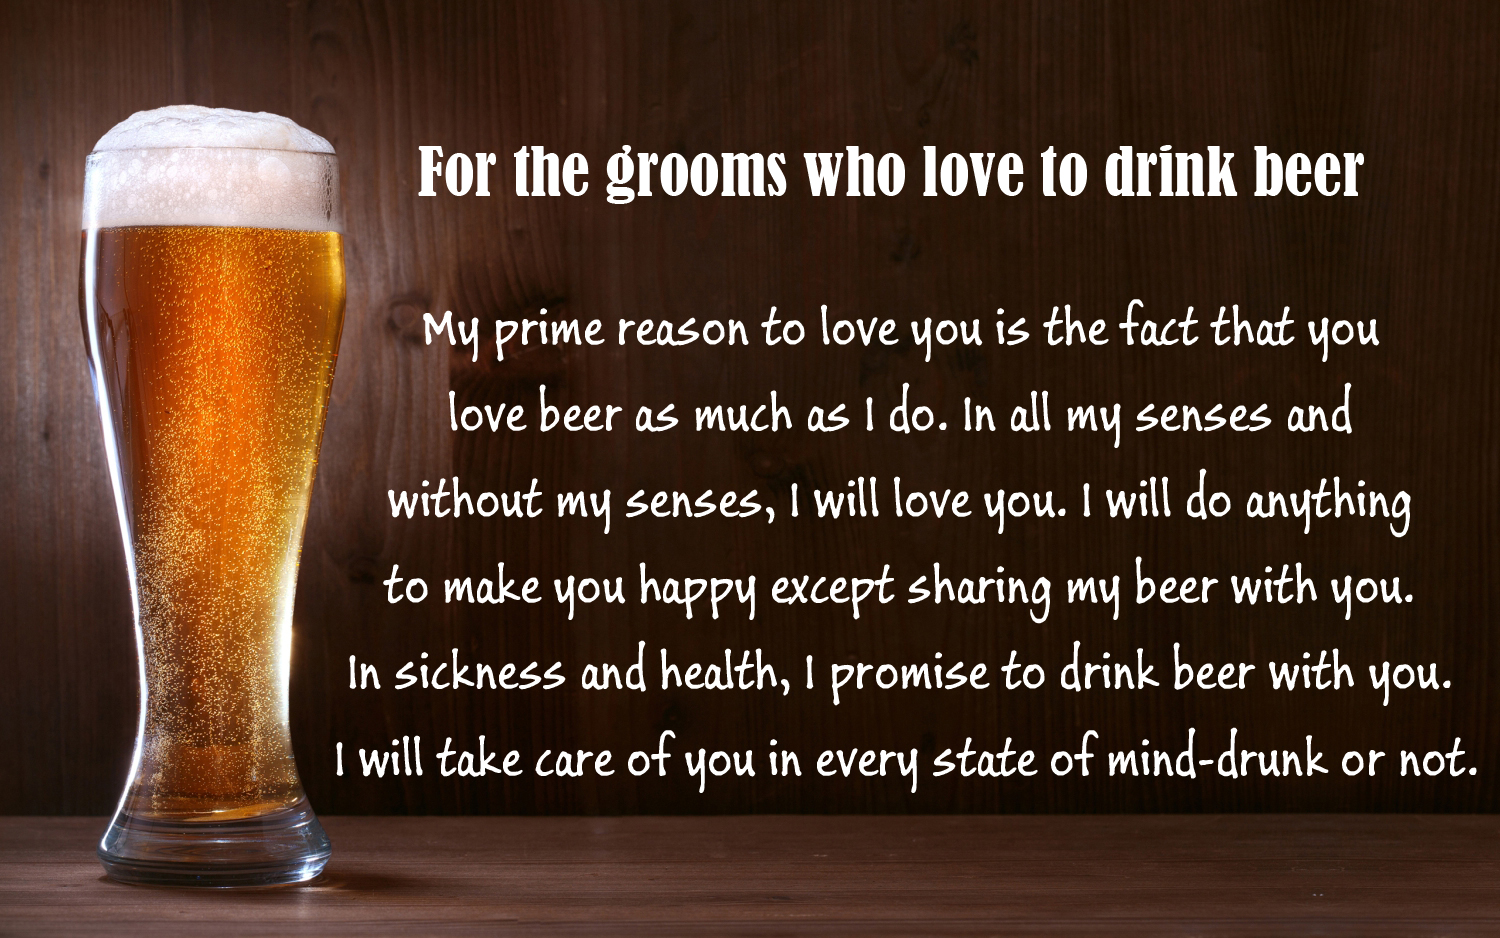 Funny wedding vows - 4 For The Grooms Who Love To Drink Beer